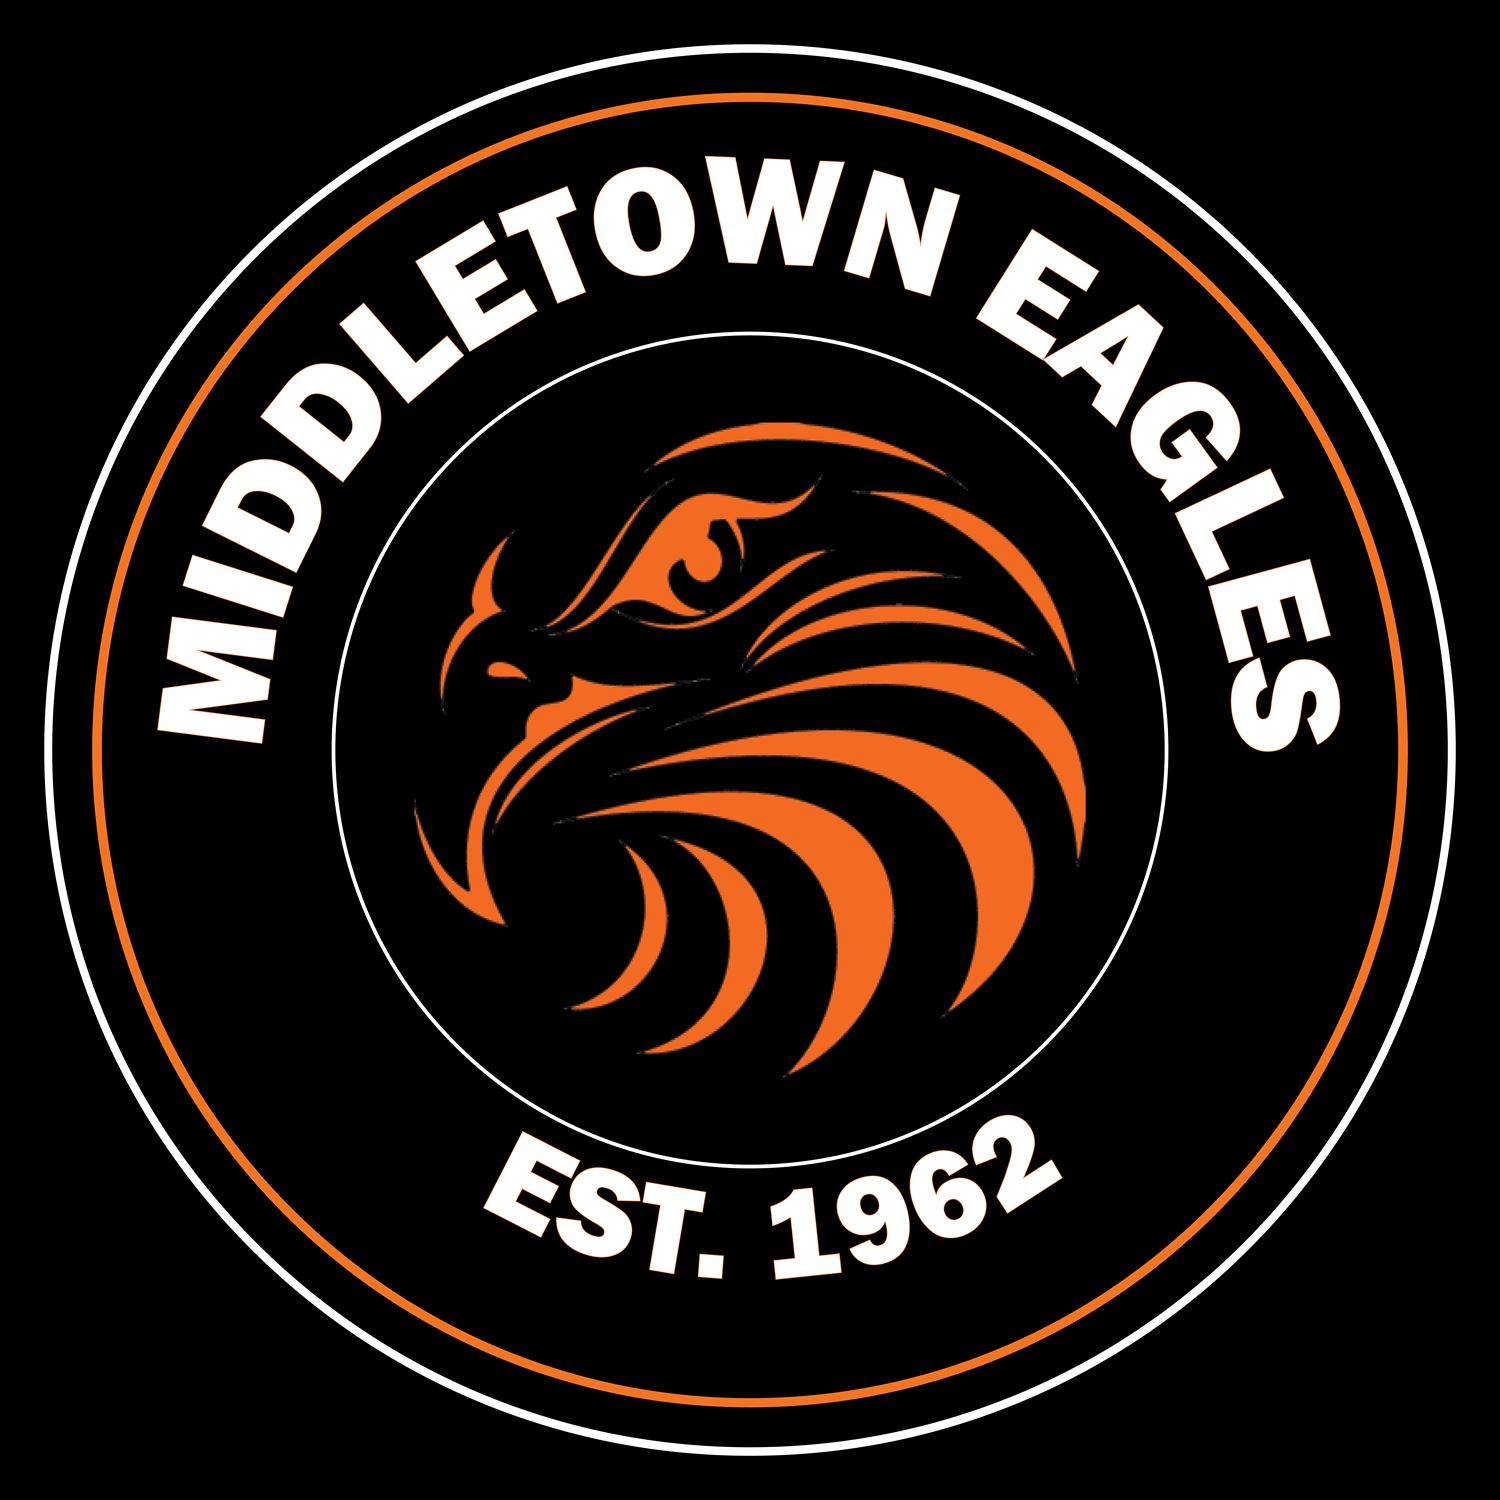 Middletown Eagles - Eagles 2018 14U